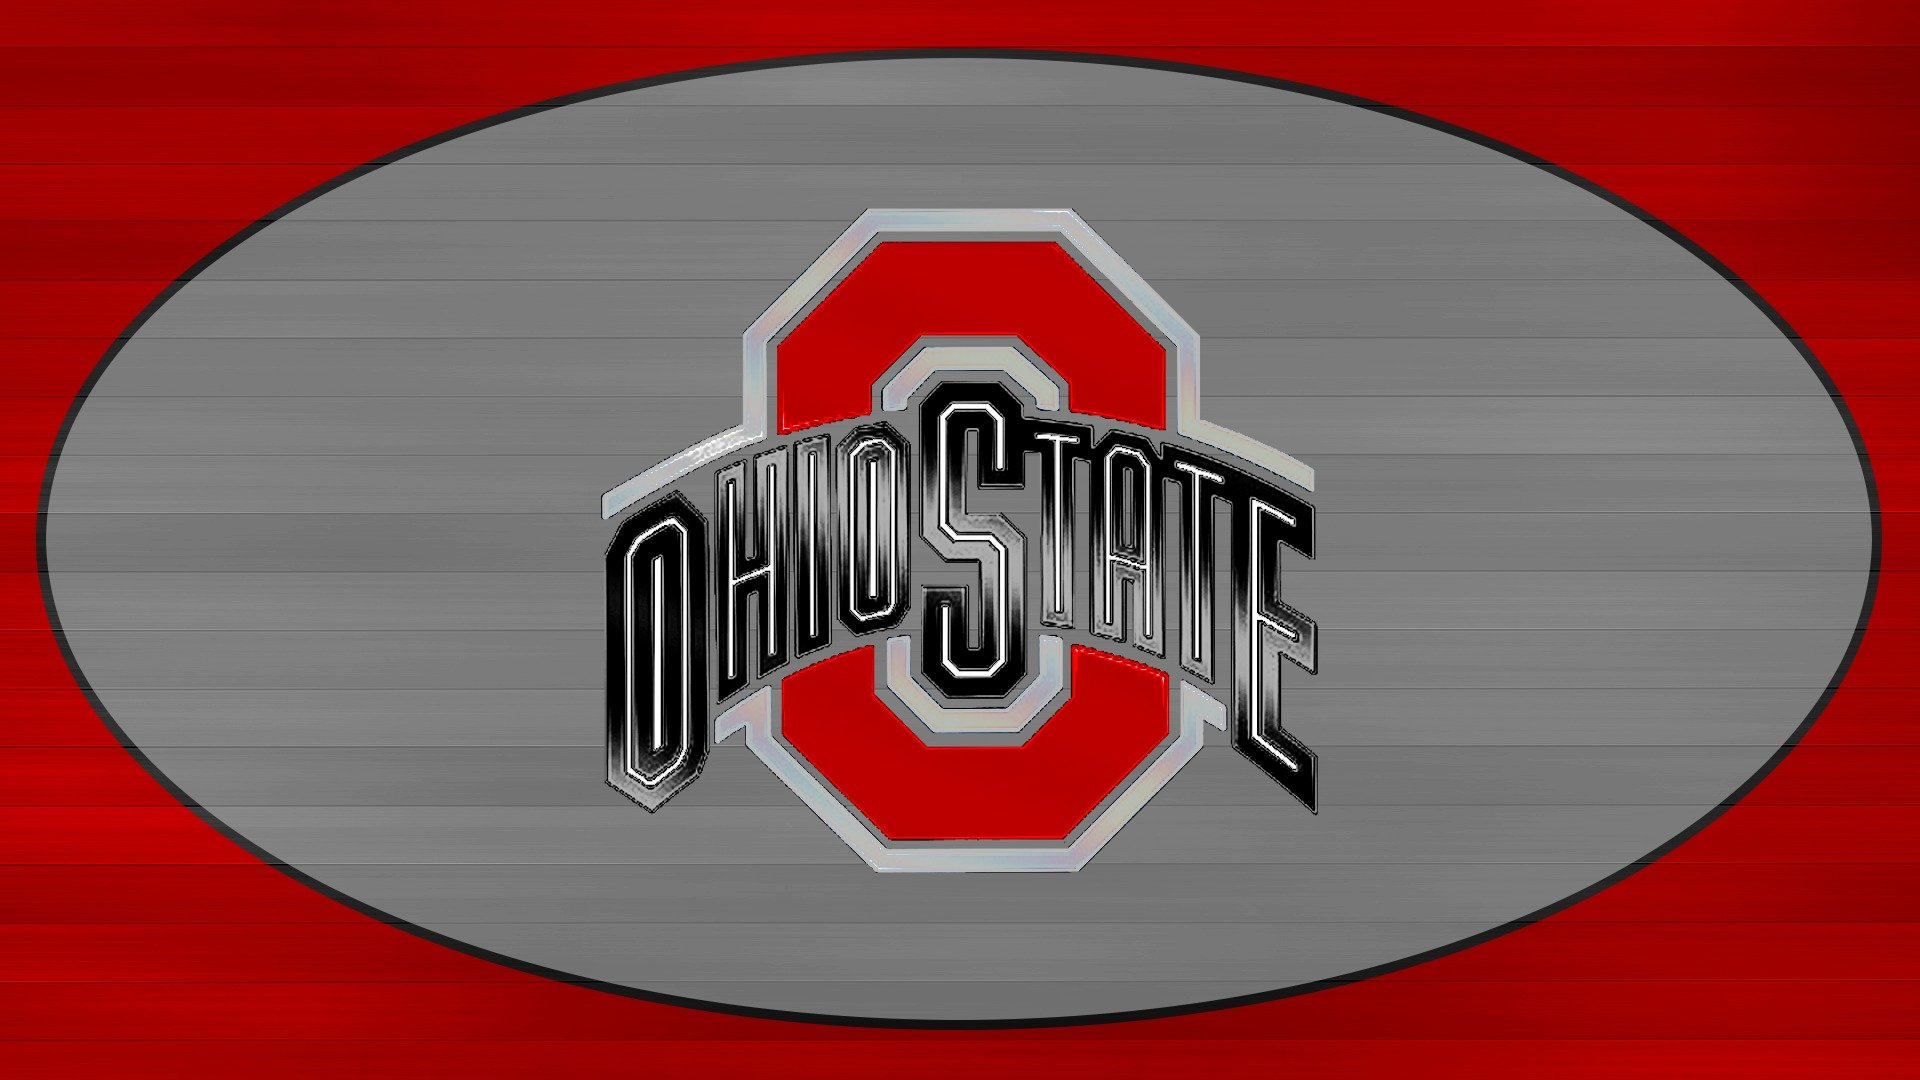 OSU Wallpaper 481   Ohio State Football Wallpaper 34652537 1920x1080